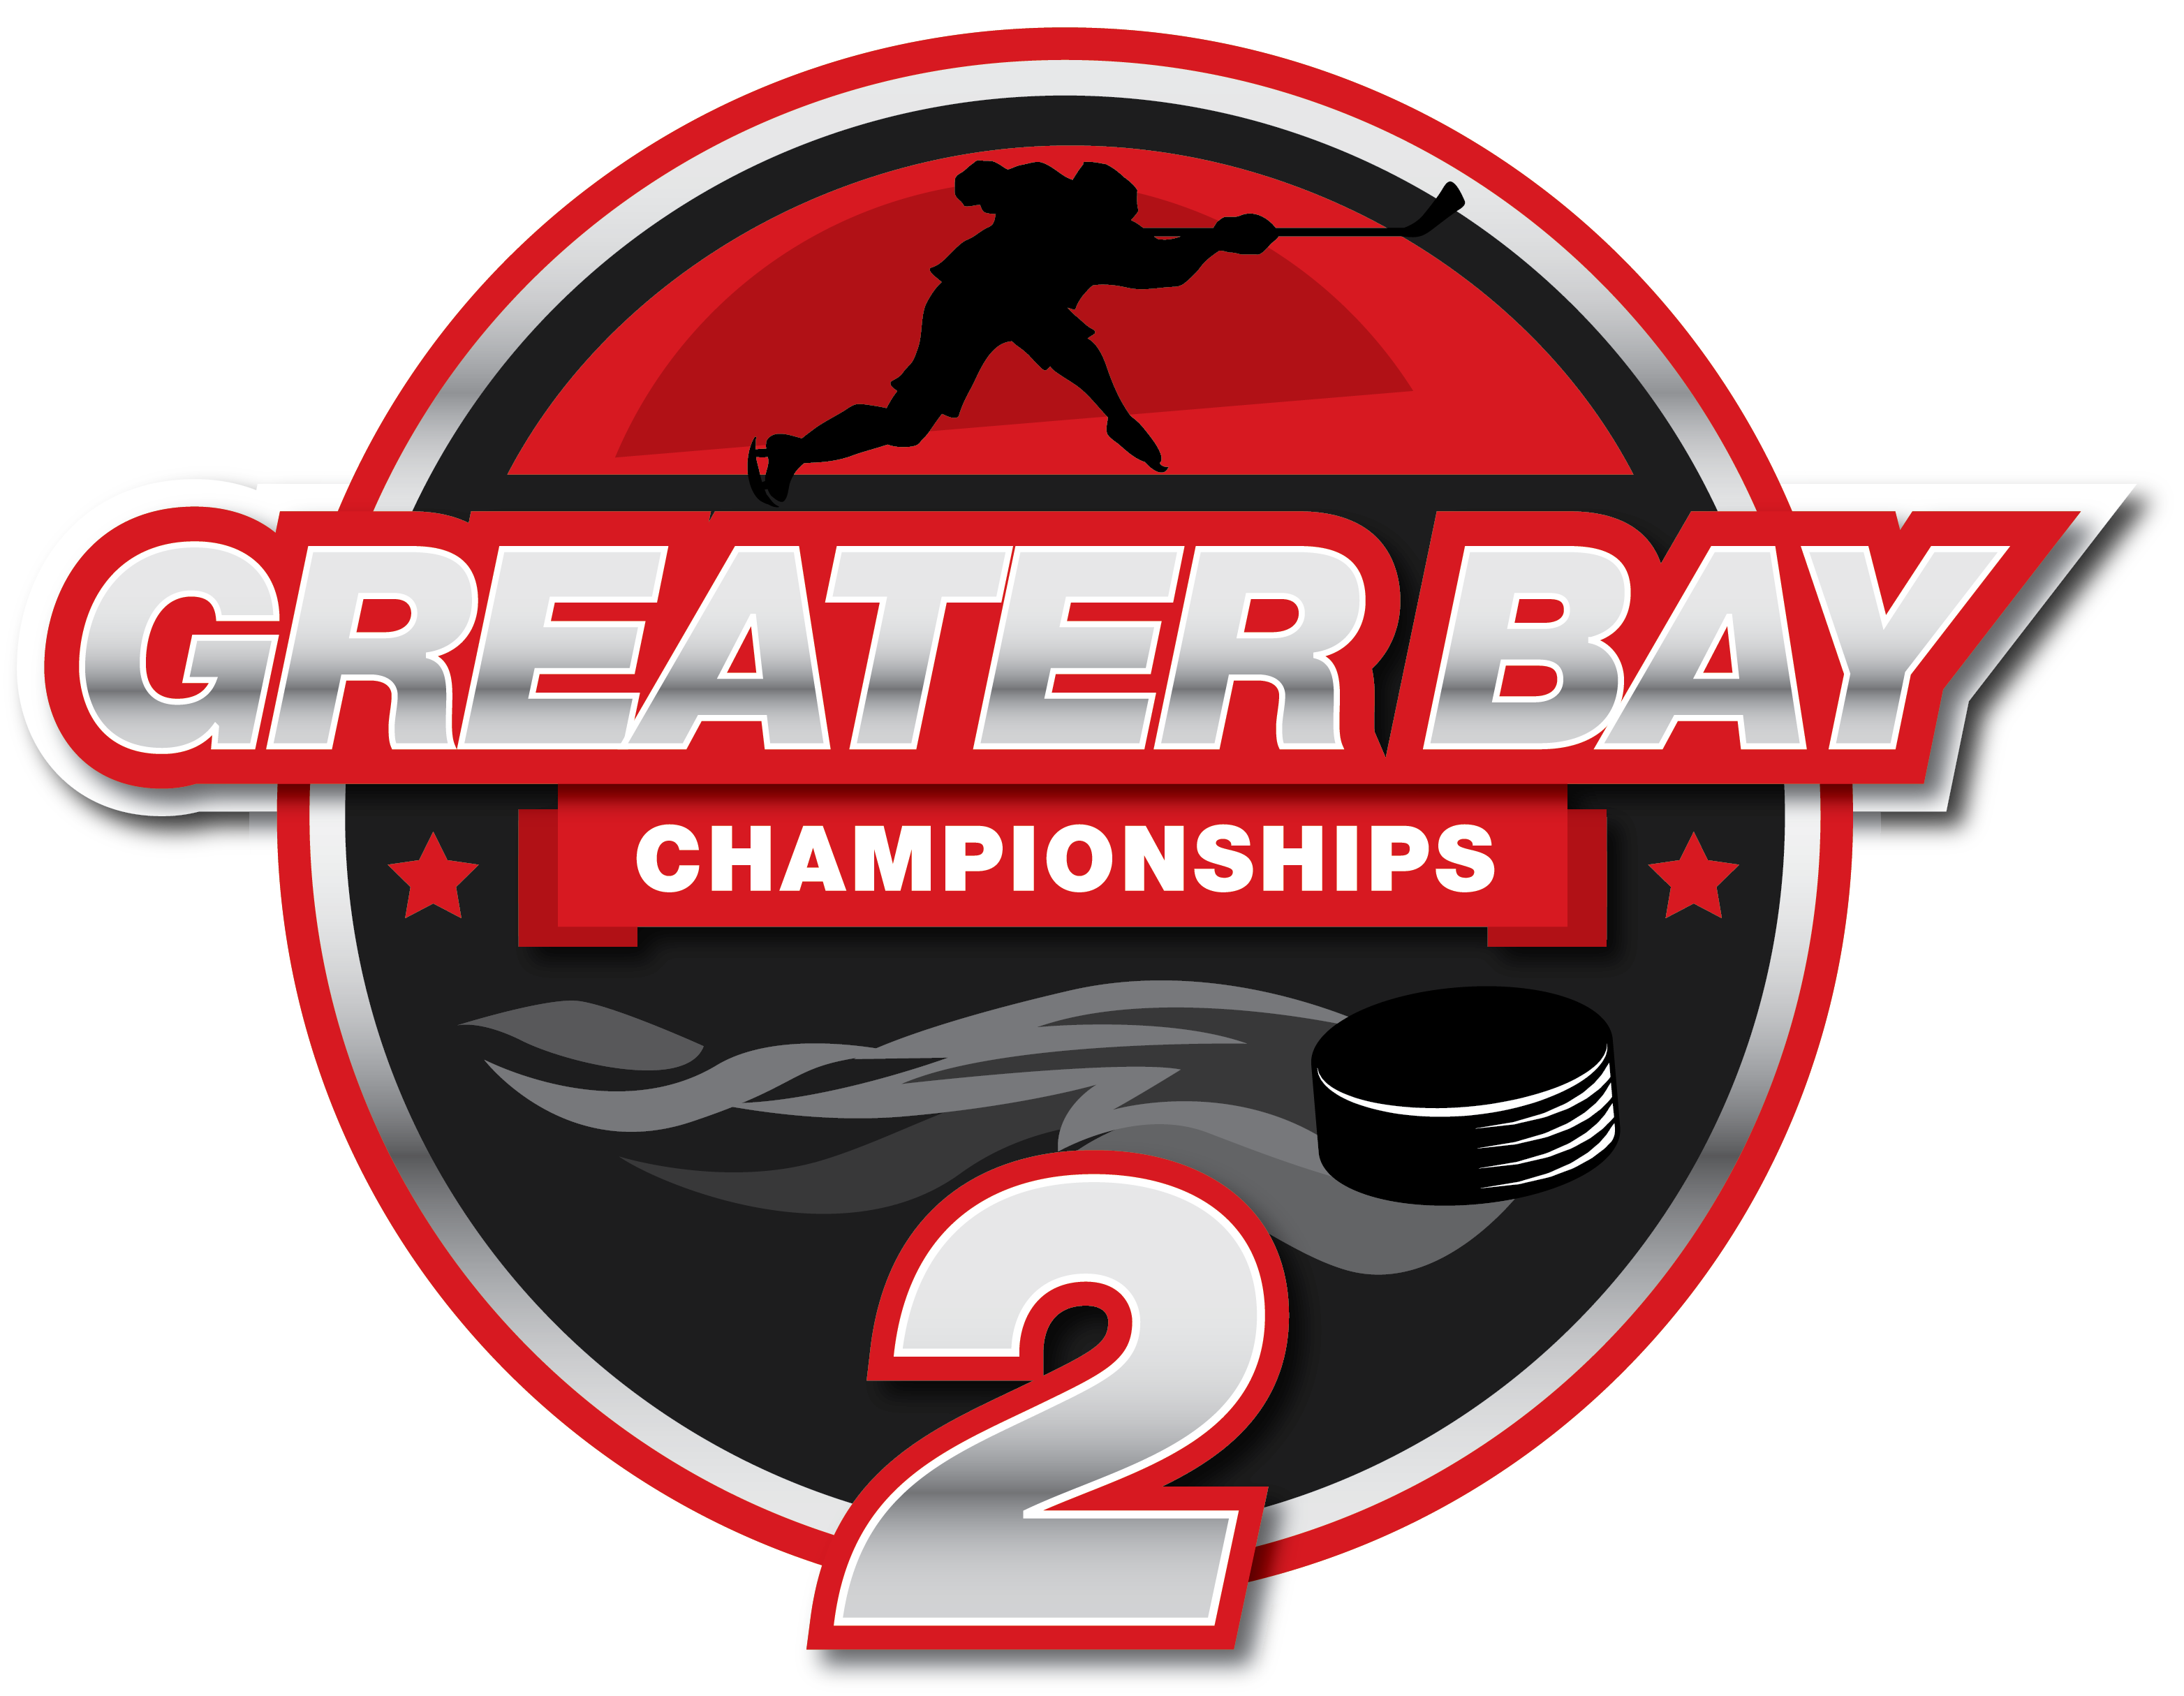 Greaterbay Championship